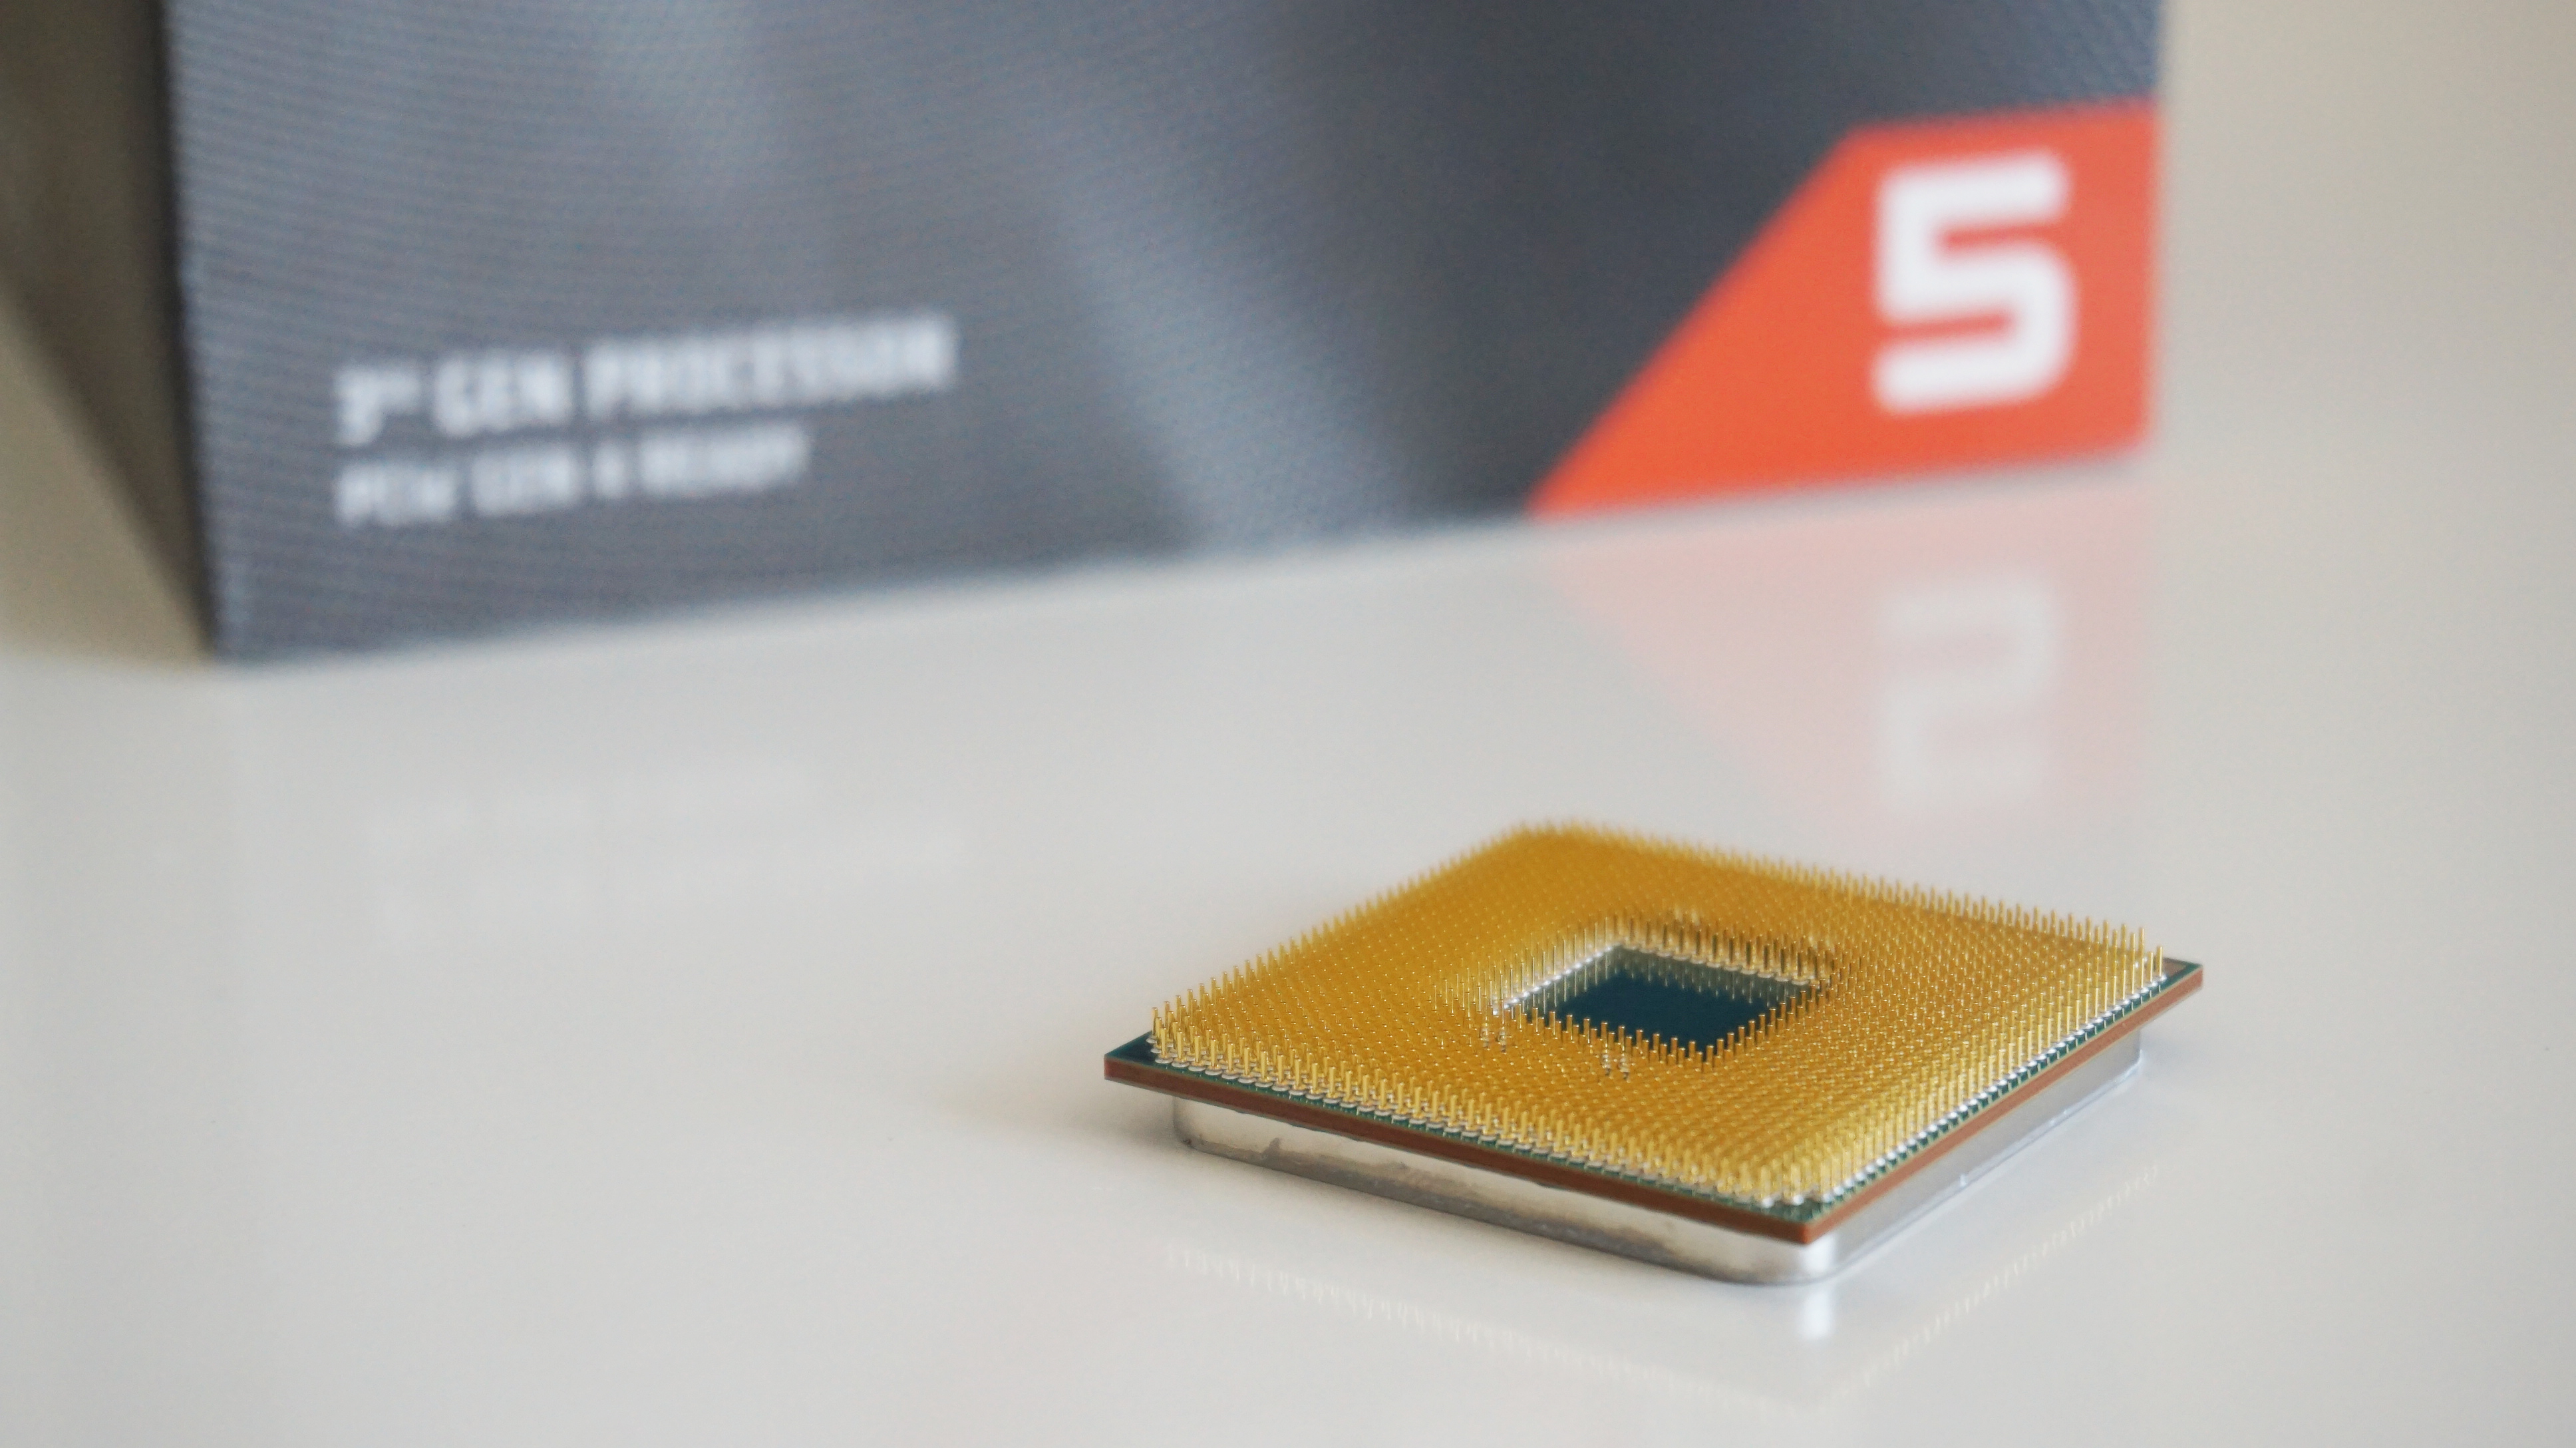 AMD Ryzen 5 3600X review: A fantastic mid-range gaming CPU